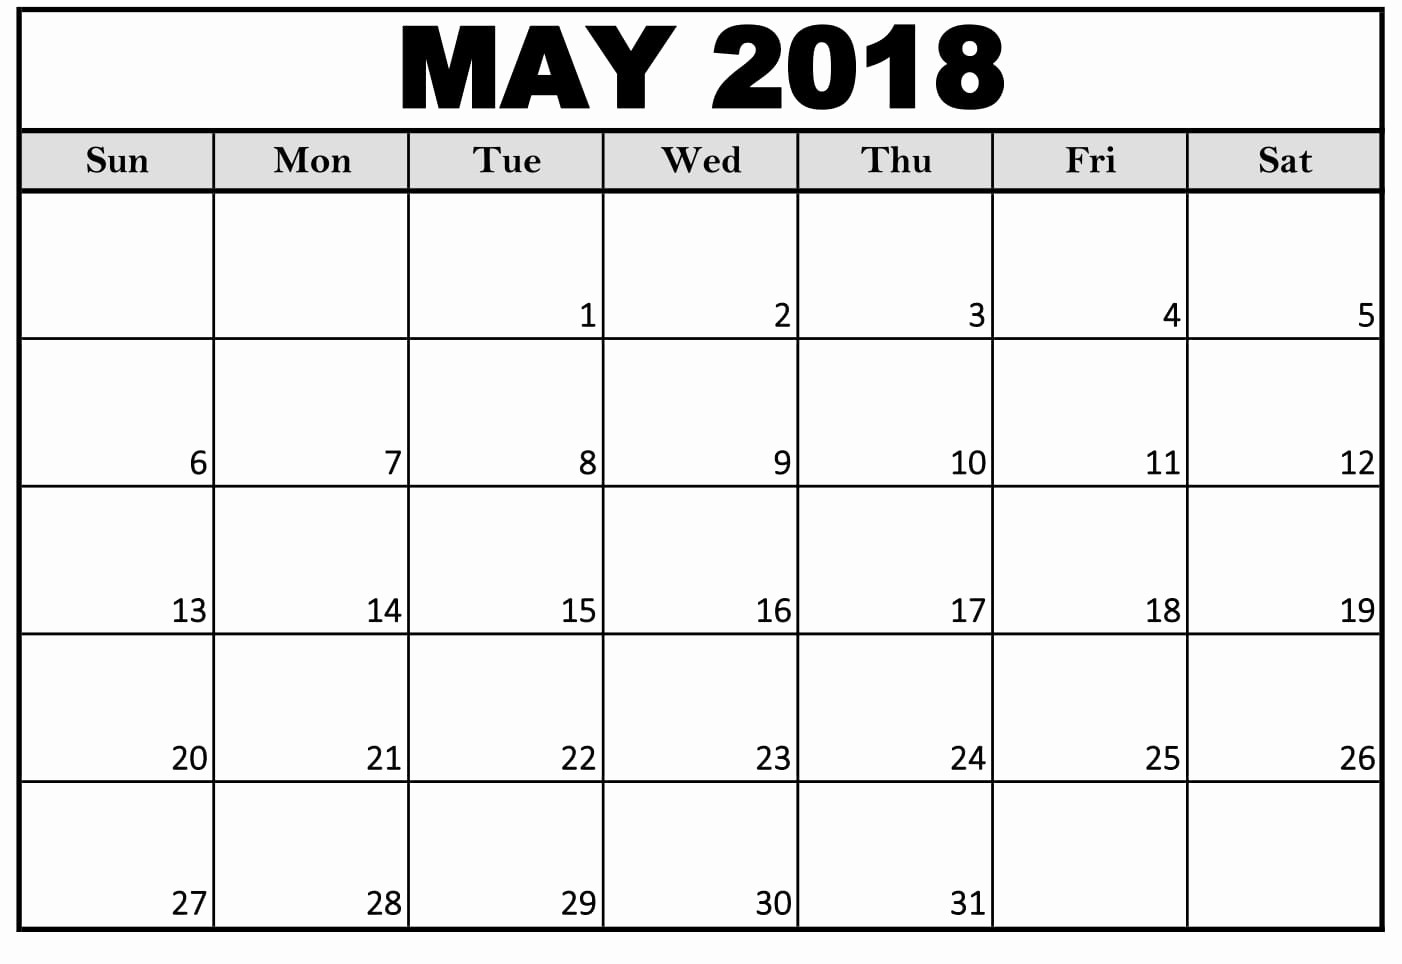 Blank May 2018 Calendar Printable Awesome Blank May 2018 Calendar Printable Free Download